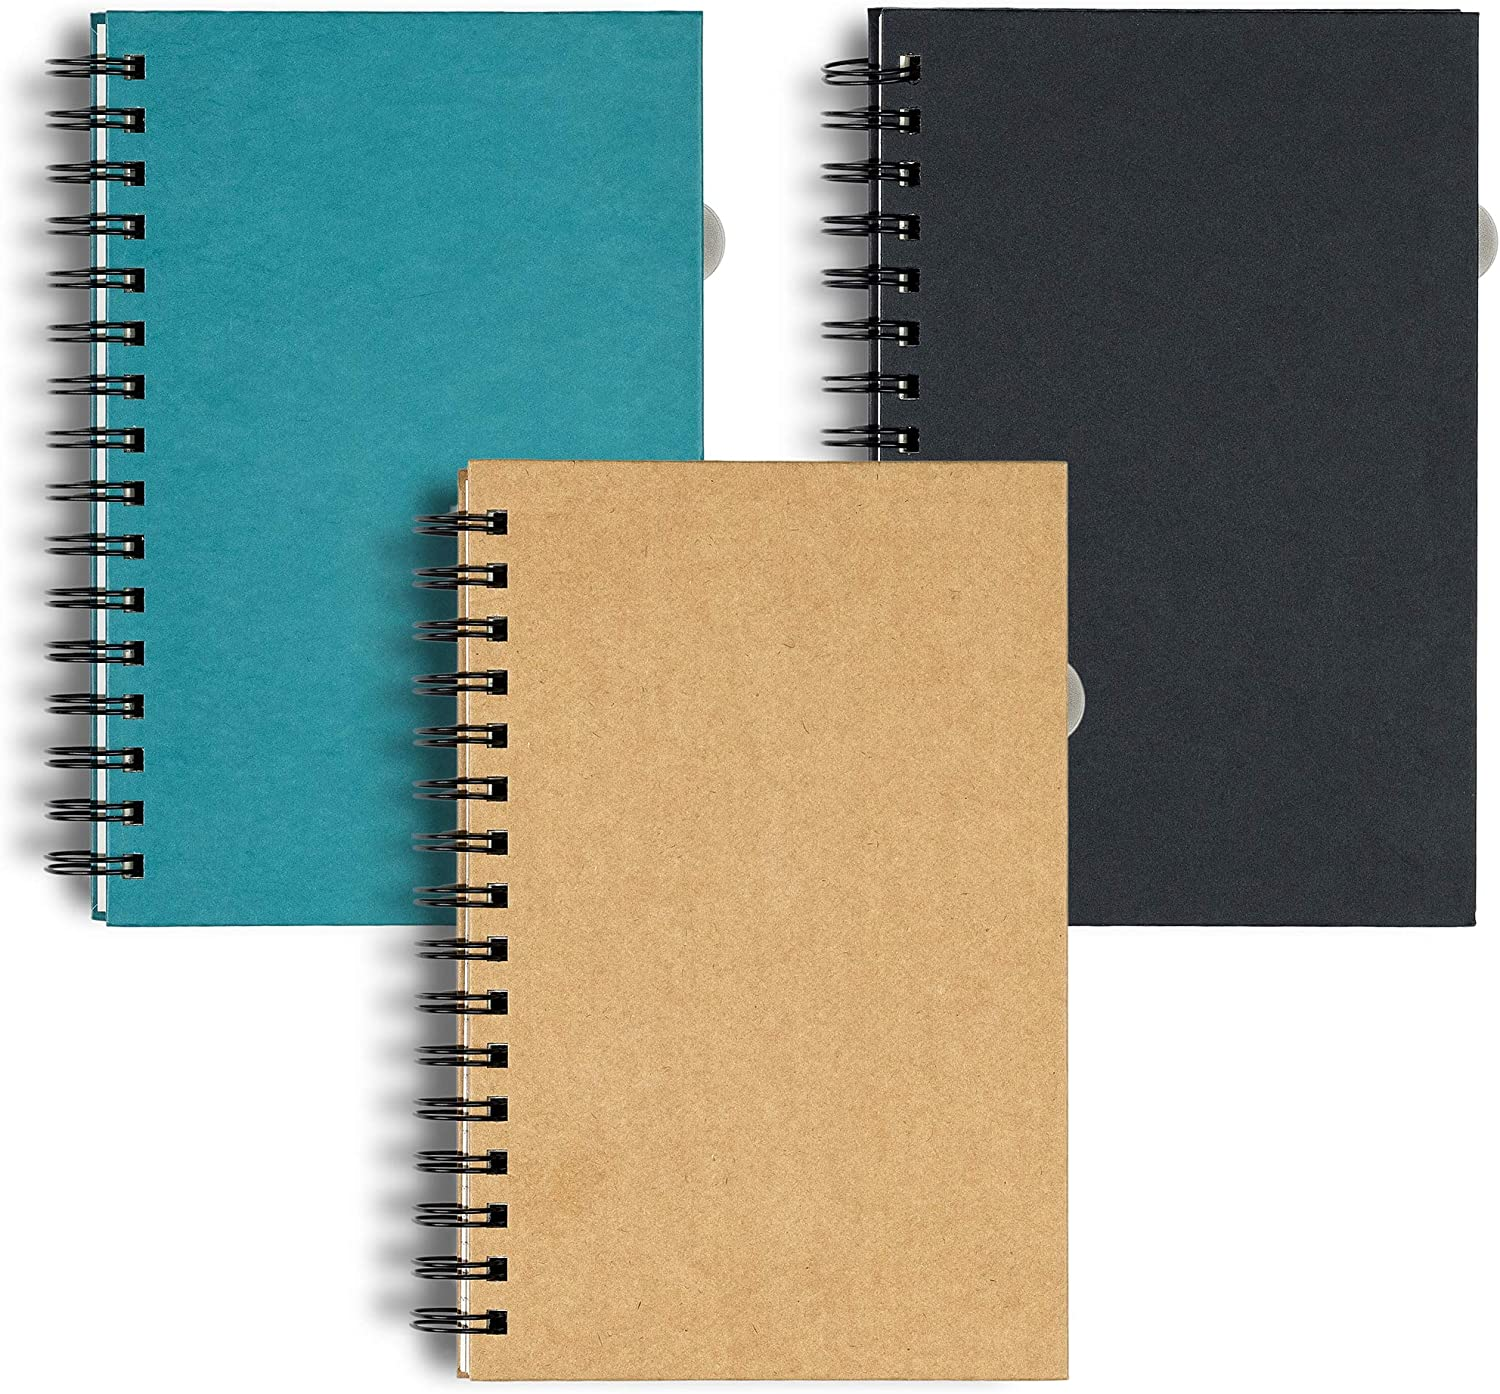 Hanote Spiral Notebook college ruled 5.5 x 8.5, 3-Subject, 120 Sheets / 240 Pages, Assorted Color (SET OF 3) Premium Lined Notebooks, Large Size Spiral Notebooks College Ruled For Men or Women.